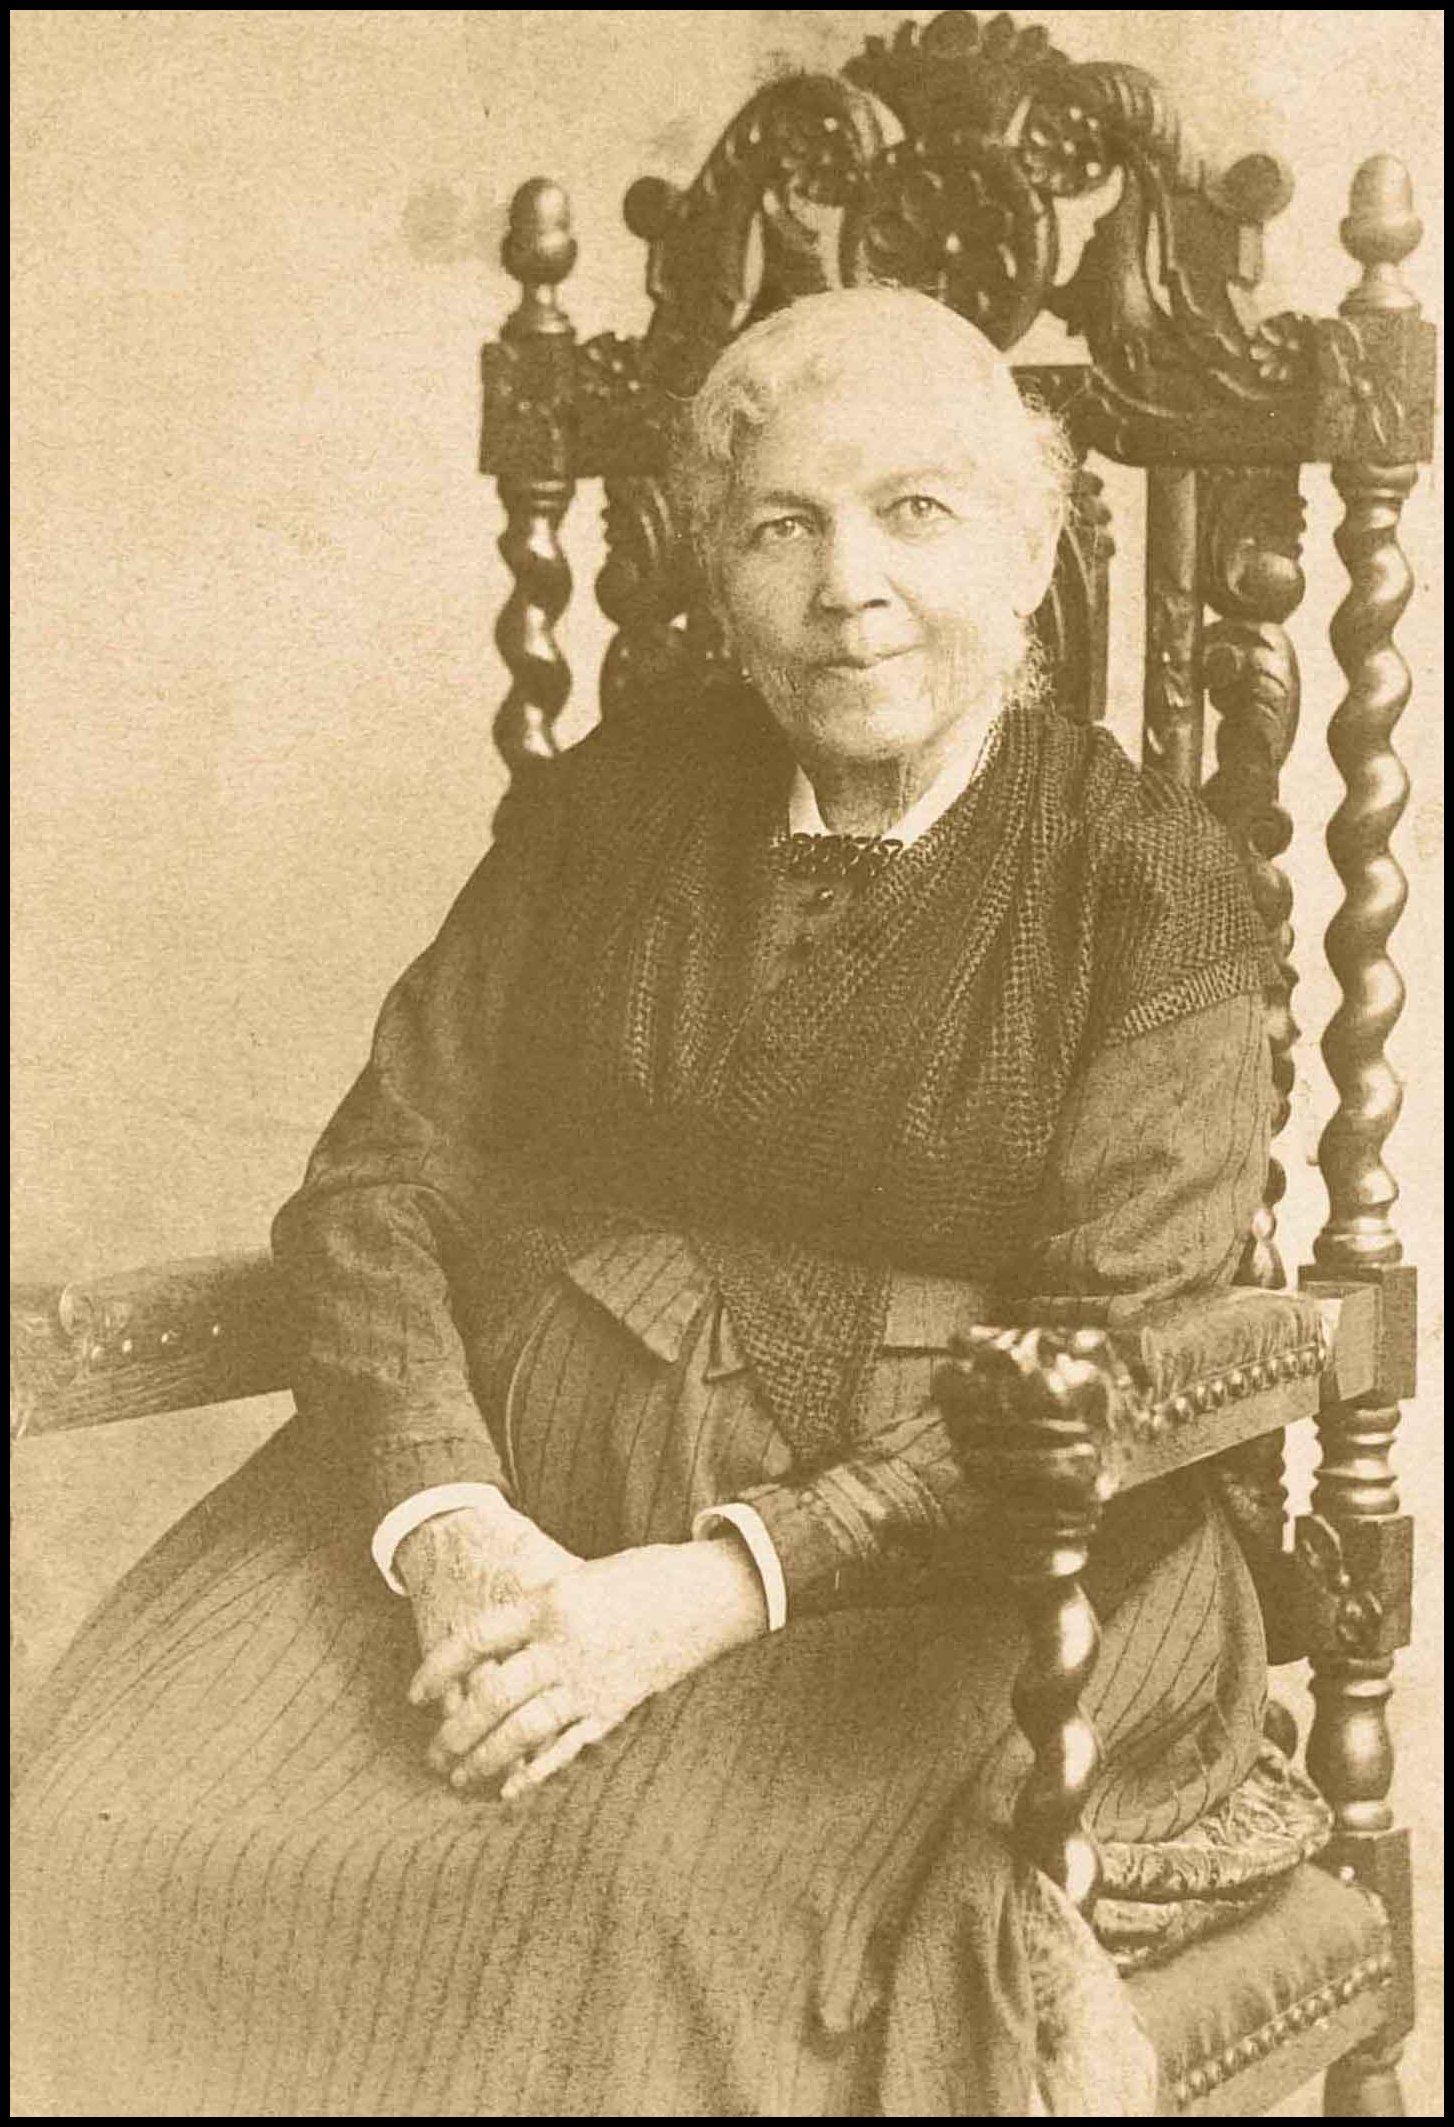 the trials of girlhood harriet jacobs essay Harriet a jacobs incidents in the life of a slave girl: jacobs's construction of black female empowerment despite the limitations of slavery harriet a jacobs incidents in the life of a slave girl is an autobiography written under the name of linda brent.